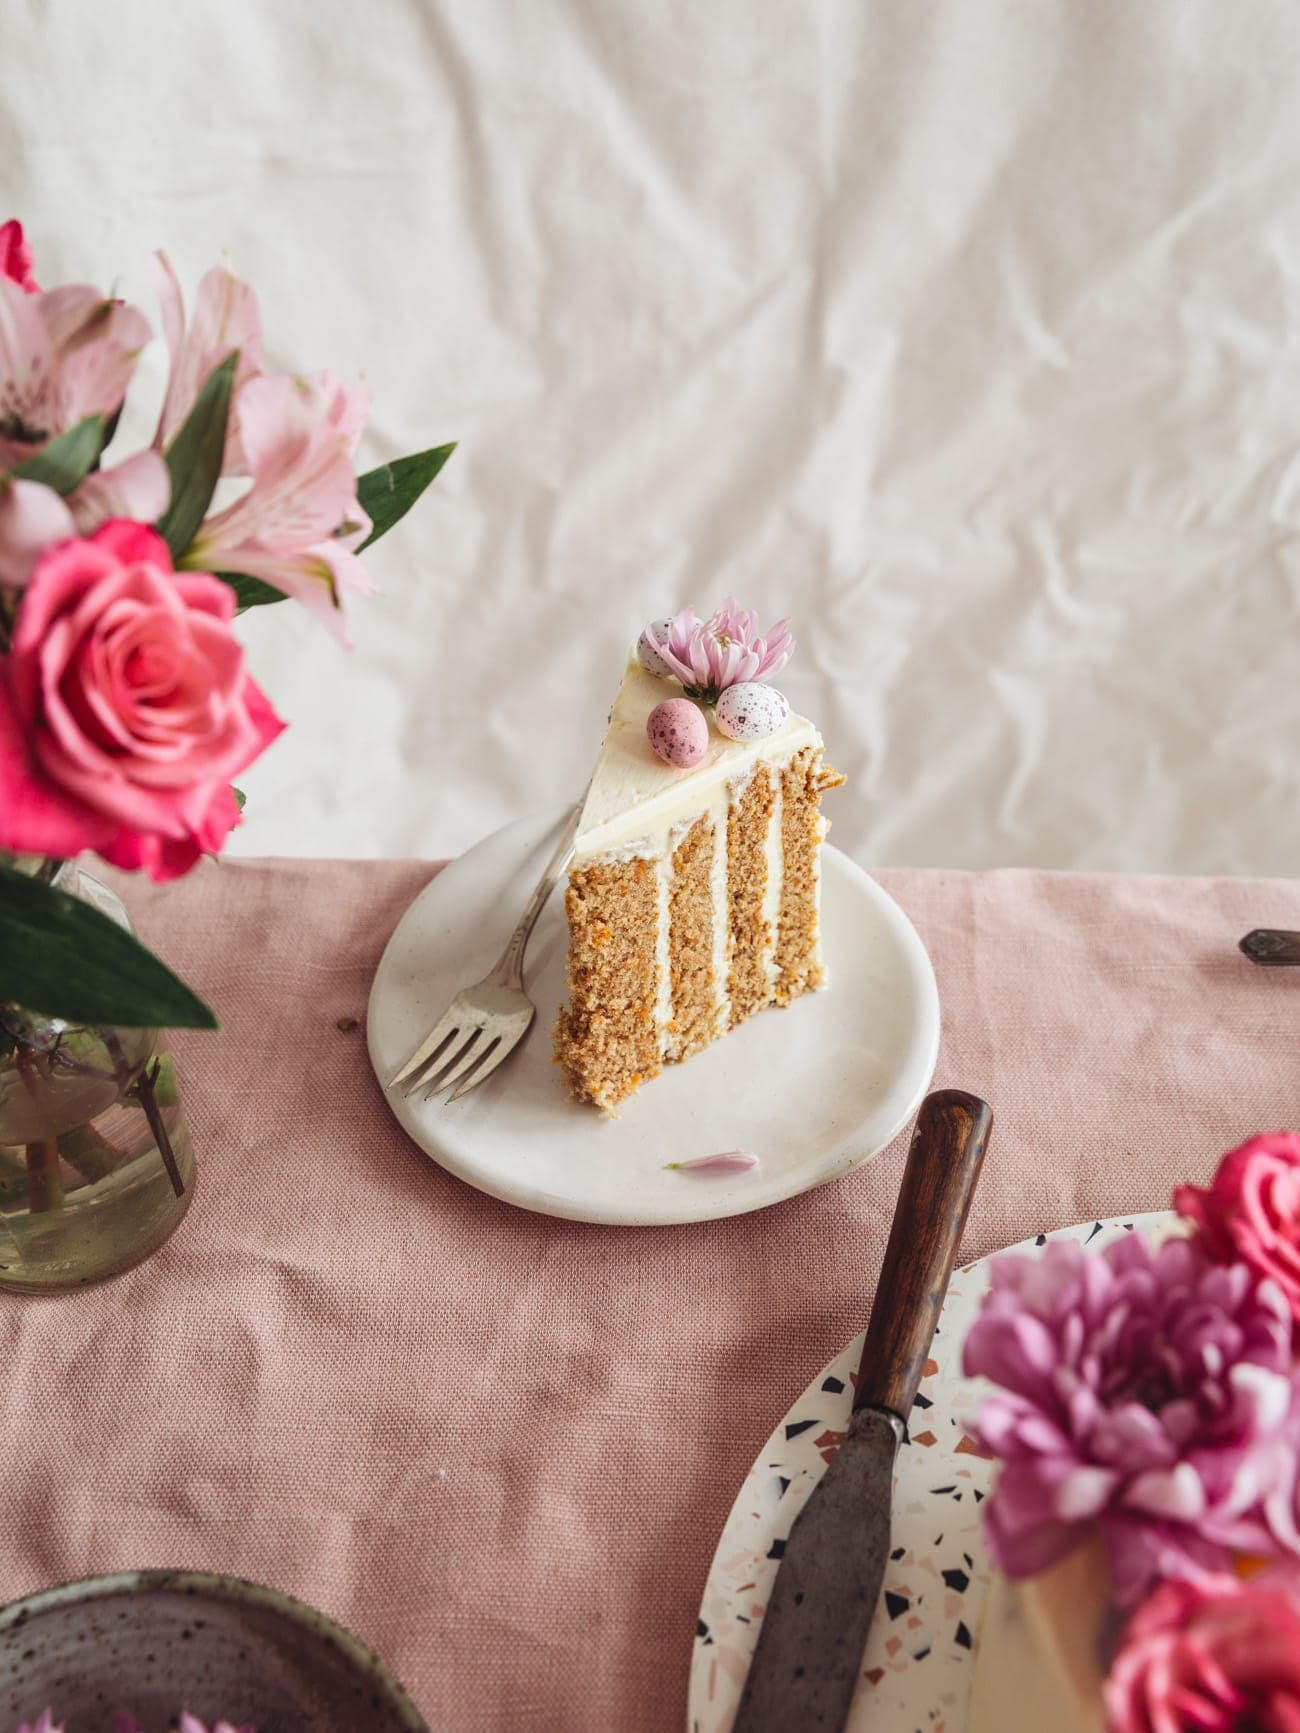 A slice of Vertical Layer Carrot Cake with vanilla Swiss Meringue Buttercream by Izy Hossack